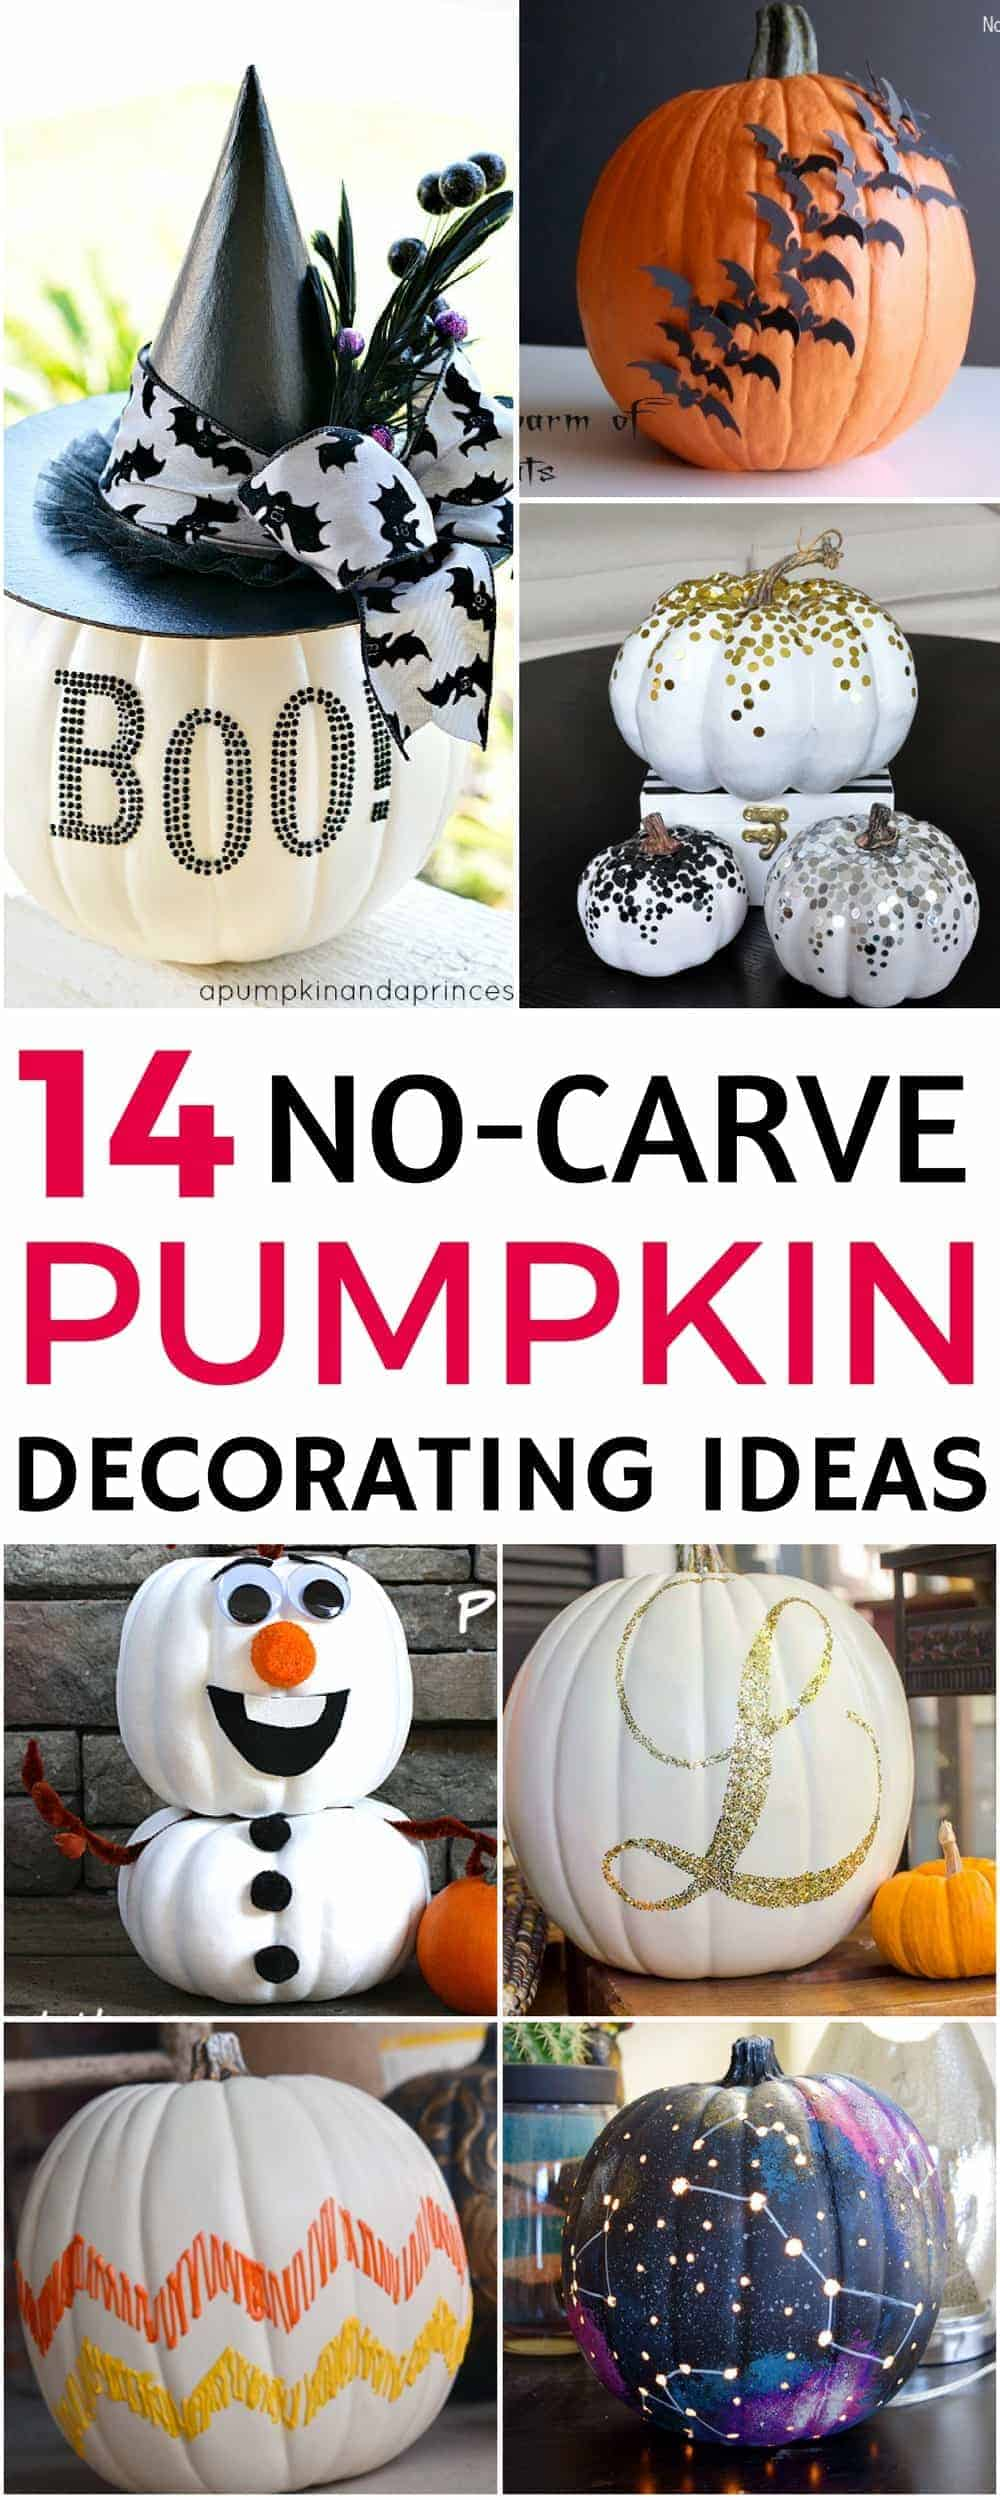 Are you looking for some pumpkin decorating ideas? Have a fun and creative Halloween with these 14 easy no carve pumpkin decorating ideas. Great to get the whole family and kids involved this fall! Number 13 is my favorite!